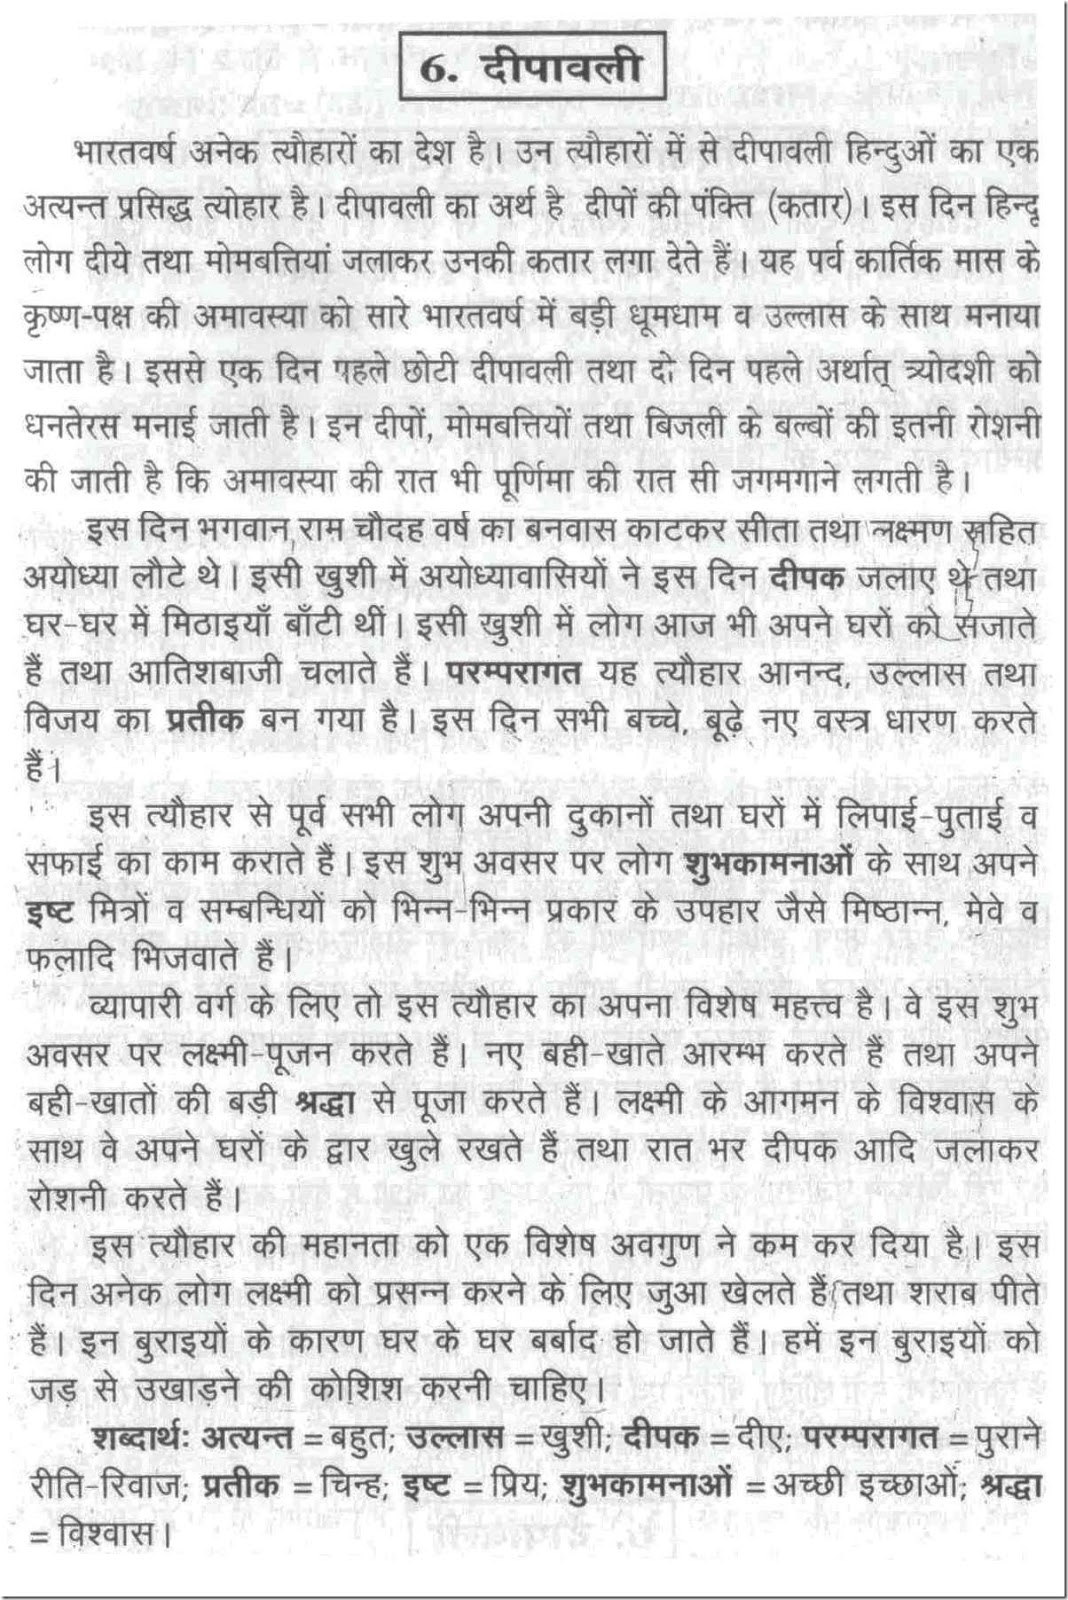 essay on indira gandhi in hindi worst scams and scandals  diwali essay short essay about diwali festival in english latest latest diwali festival essay in hindi